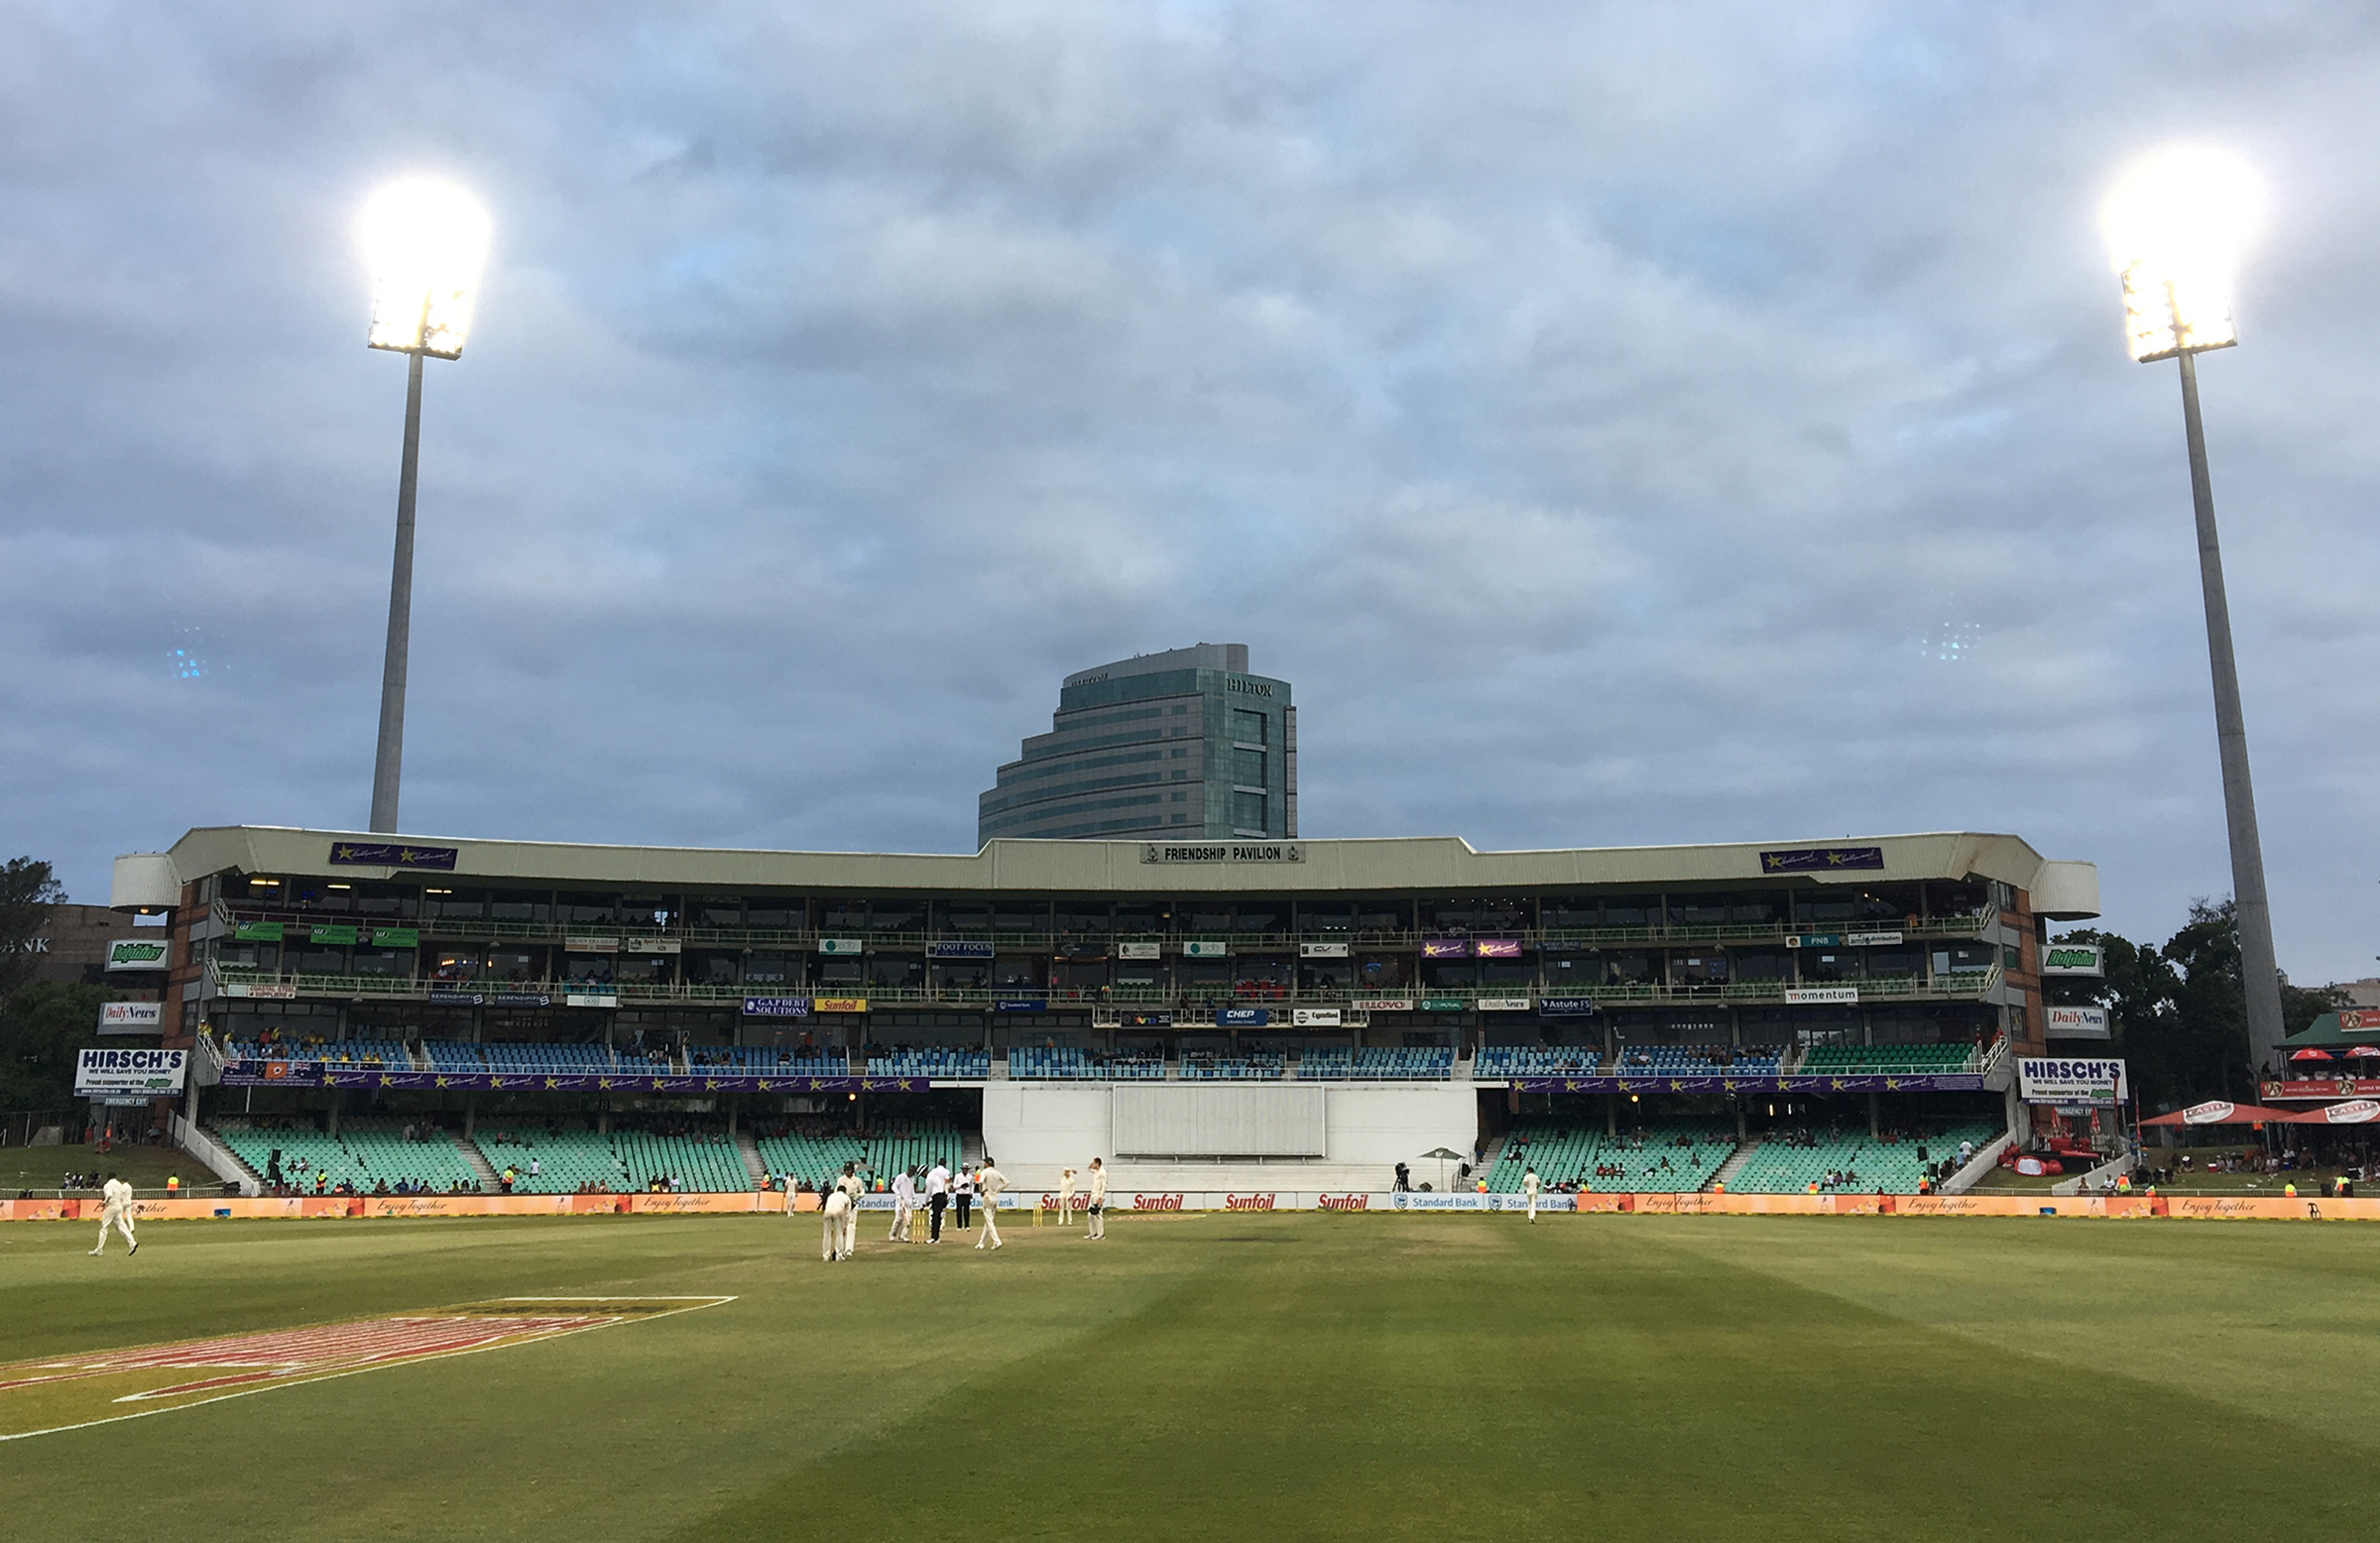 The scene at Kingsmead just before stumps was called // Cricket Network